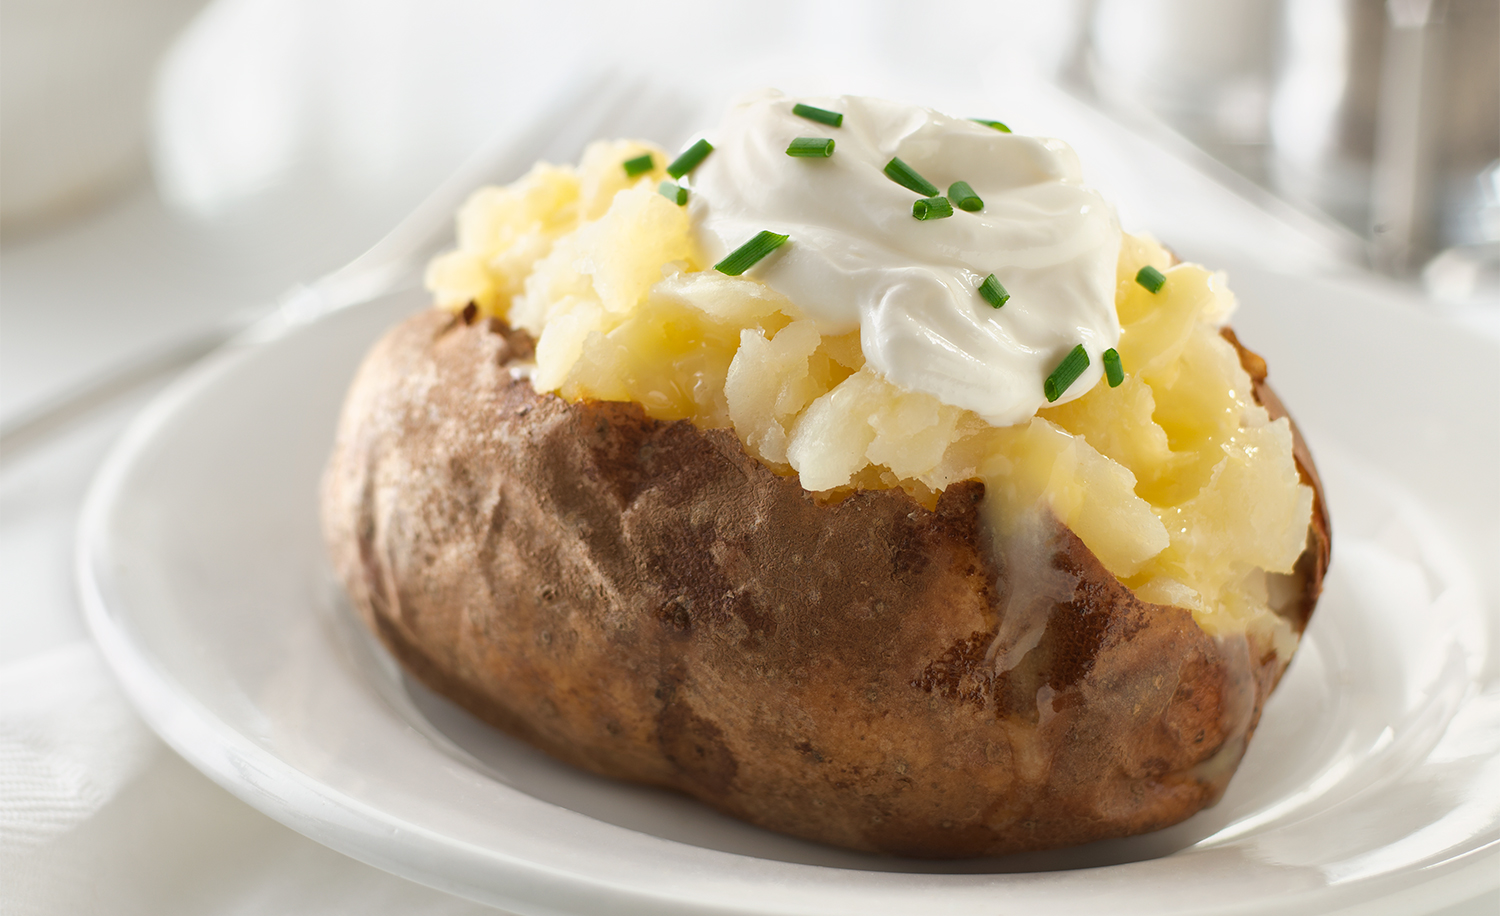 Baked Potato | Tony Kubat Photography